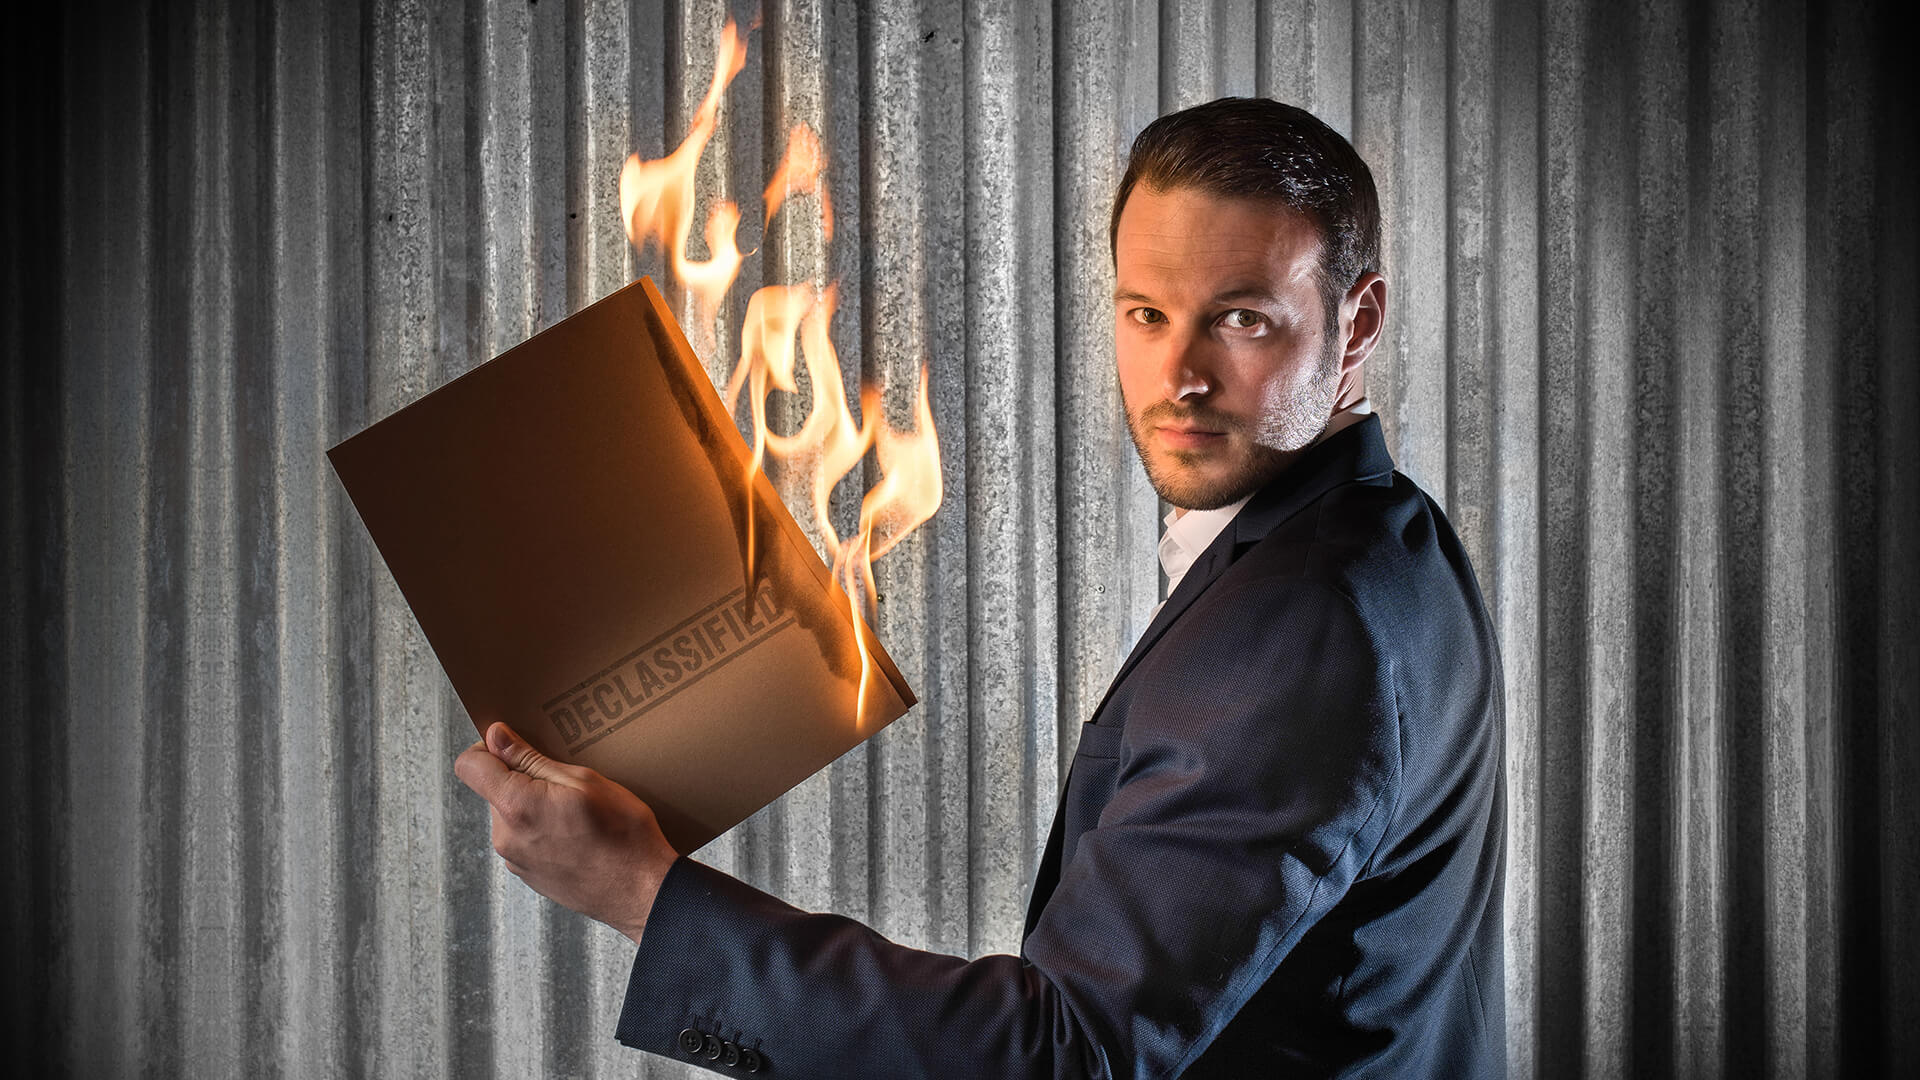 Aaron Calvert burning a declassified file for his Edinburgh Fringe Magic show at the Gilded Balloon Aaron Calvert Declassified review edfringe